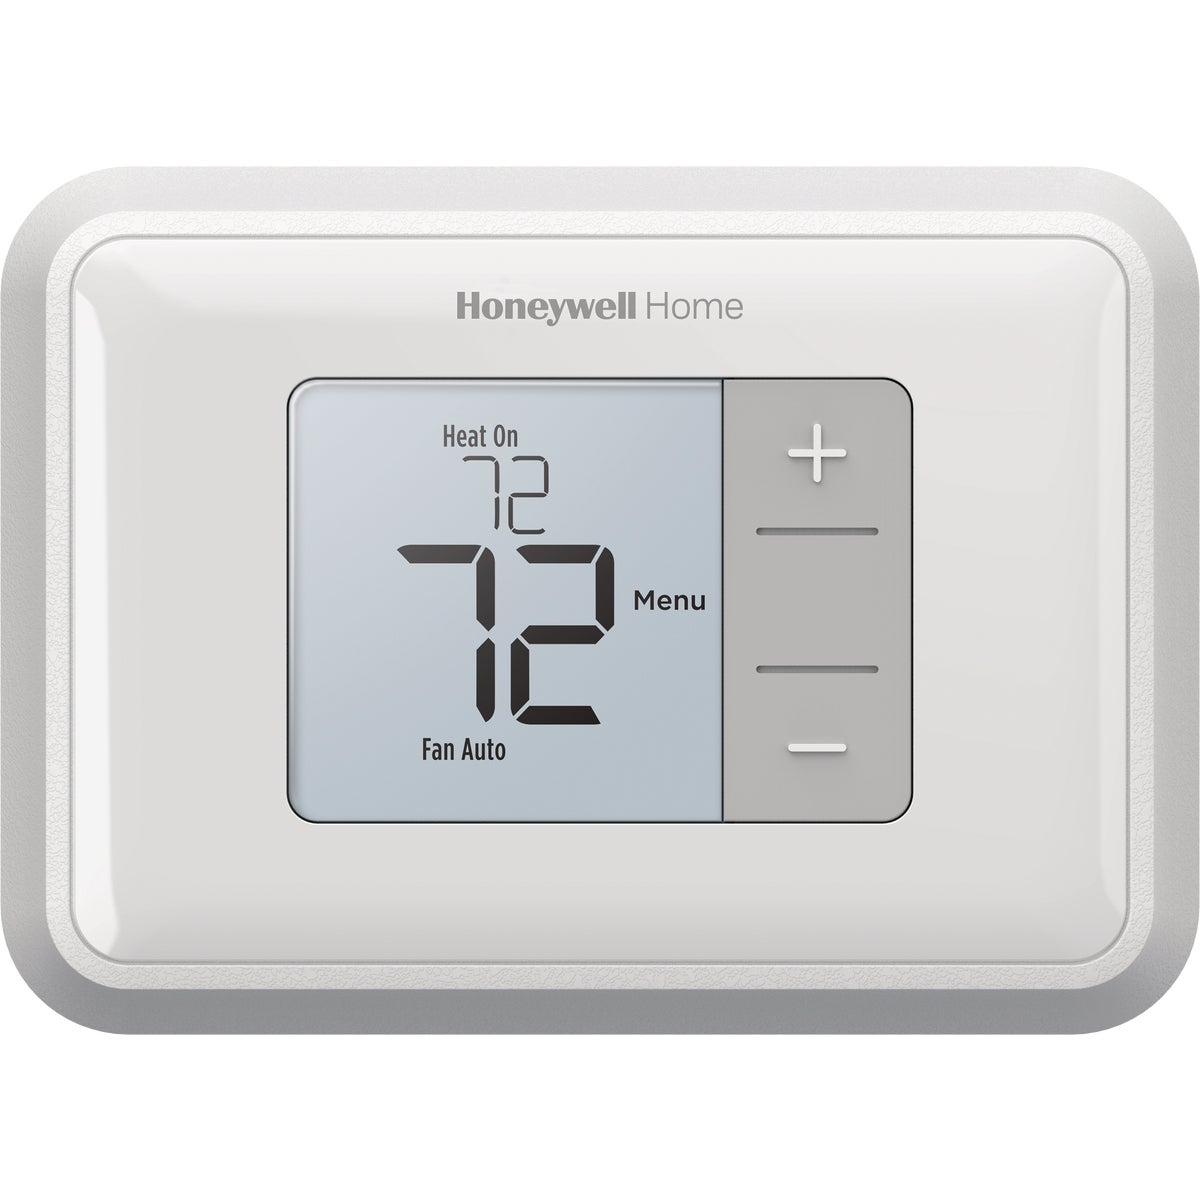 DIGITAL MANUAL THERMOSTA - RTH5100B1025K by Honeywell Internatl